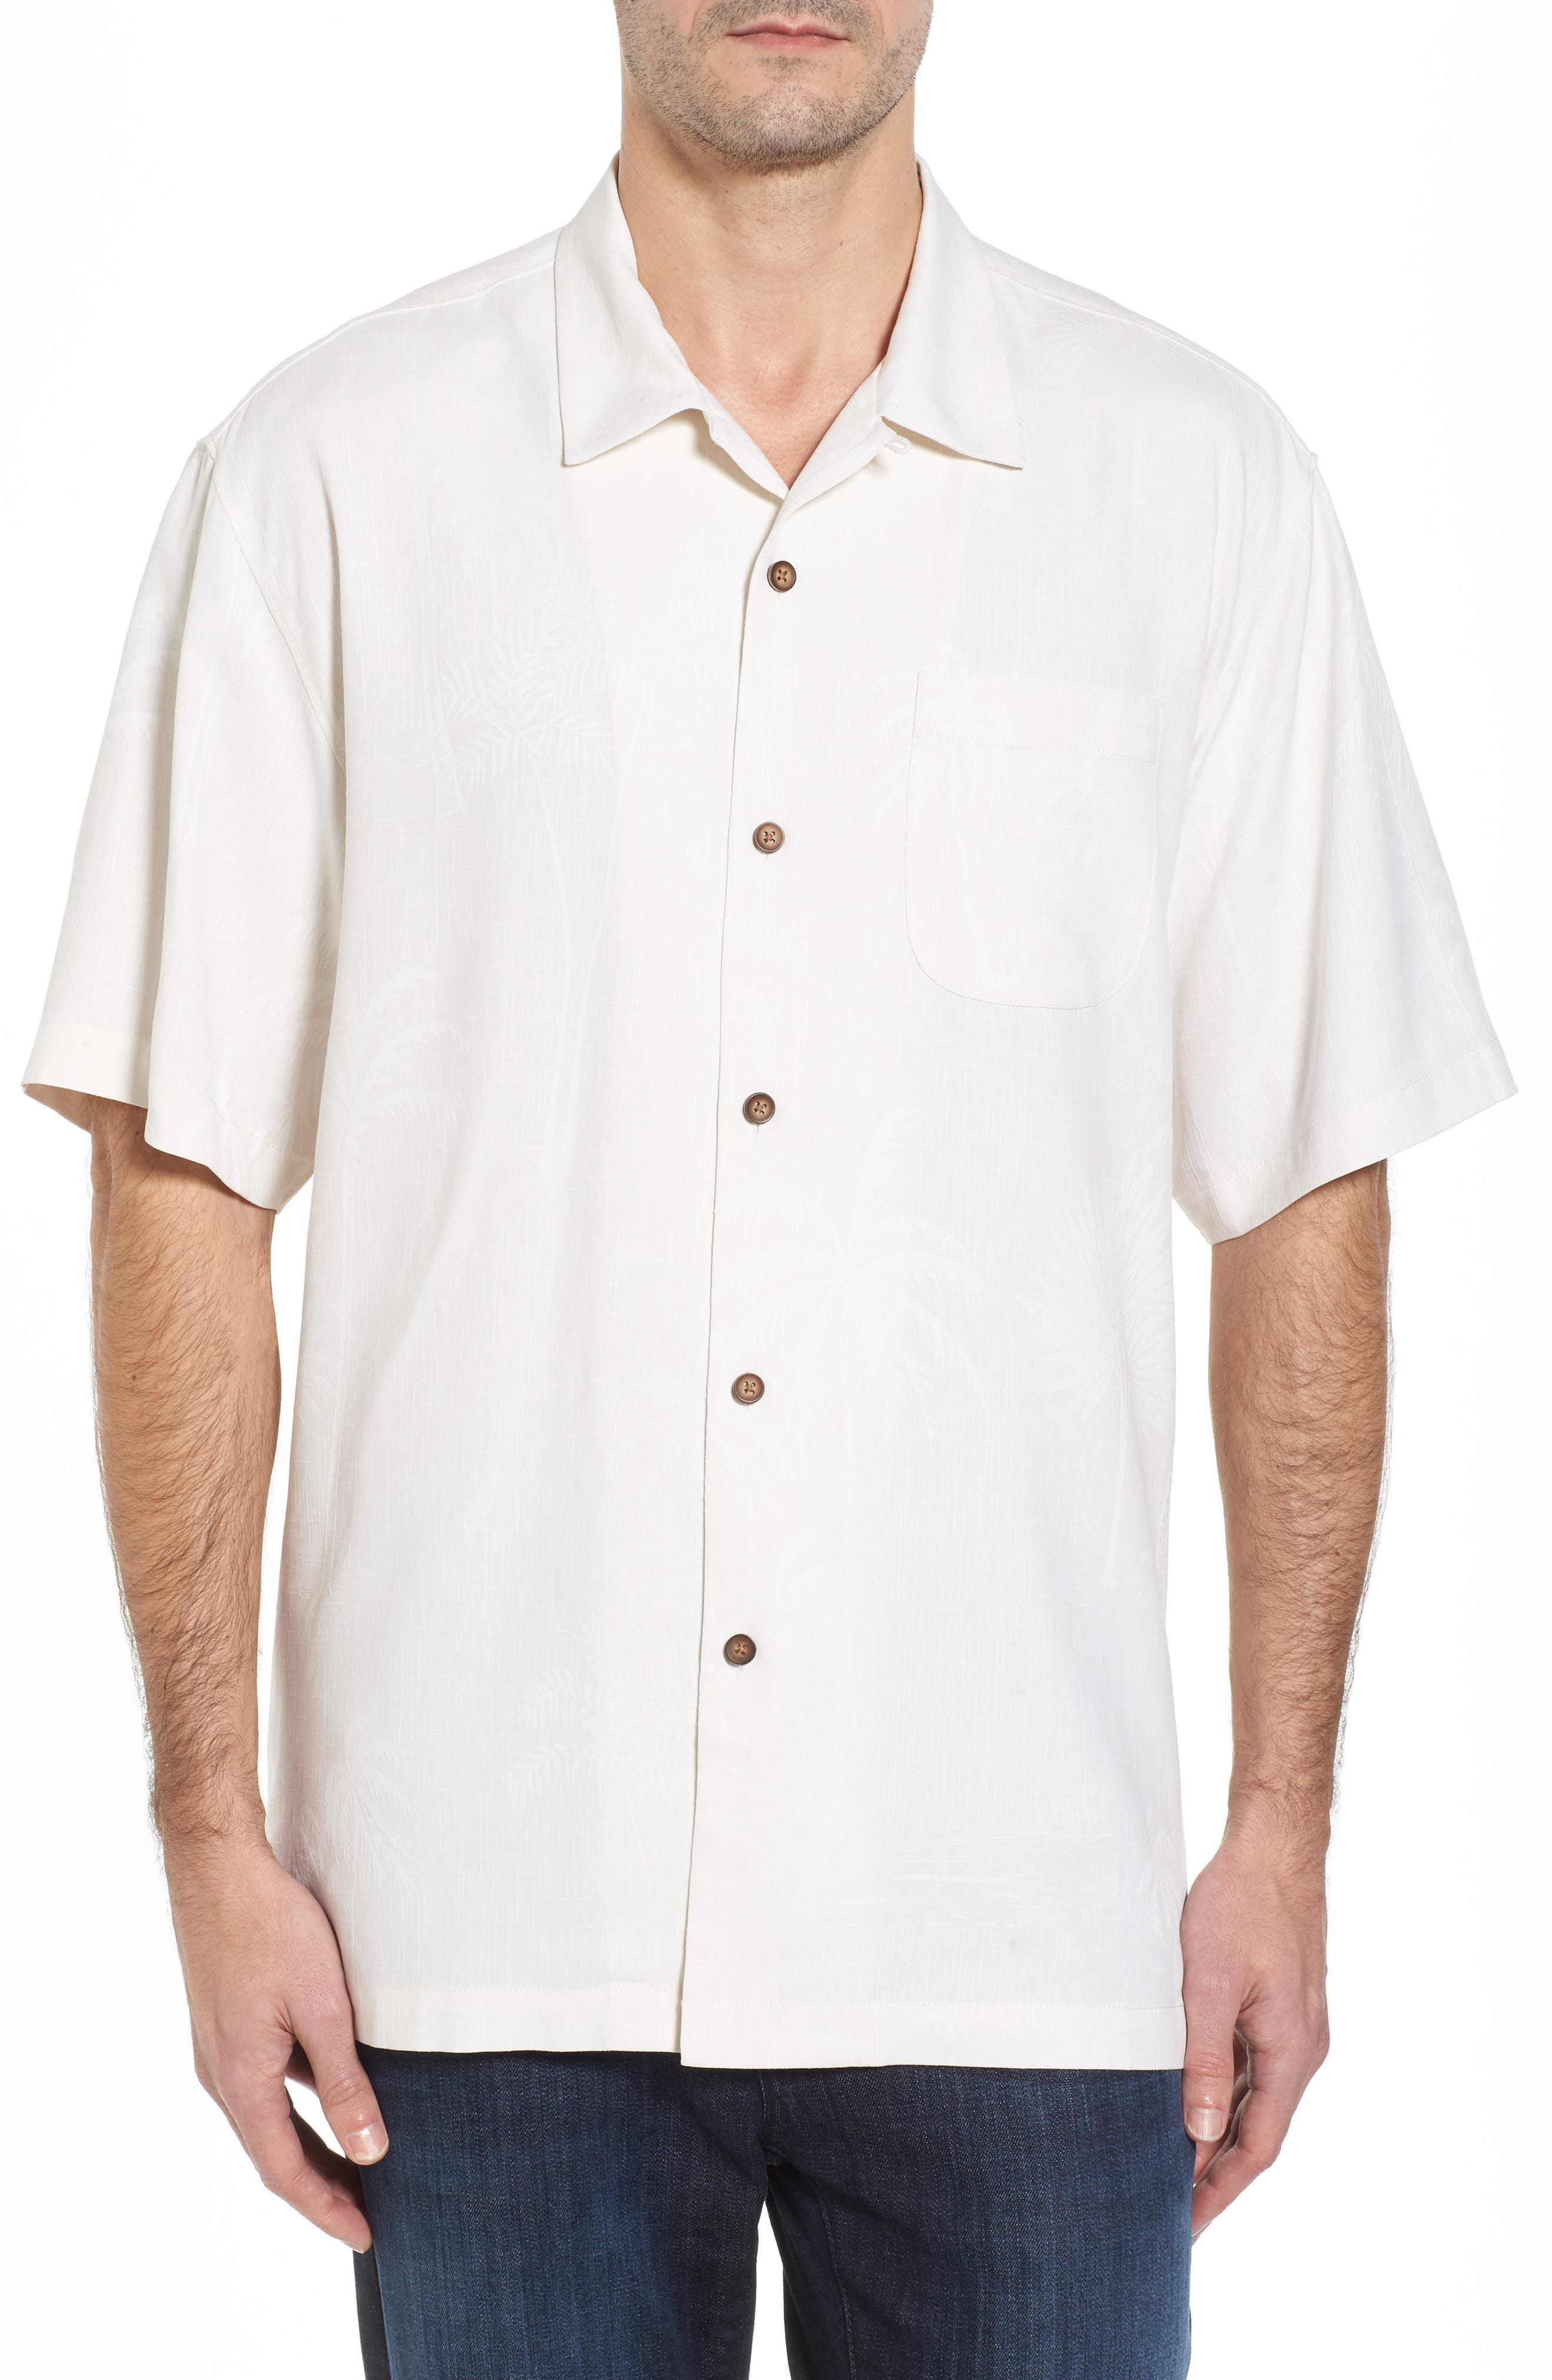 Offshore Sails Silk Camp Shirt,                         Main,                         color, Continental